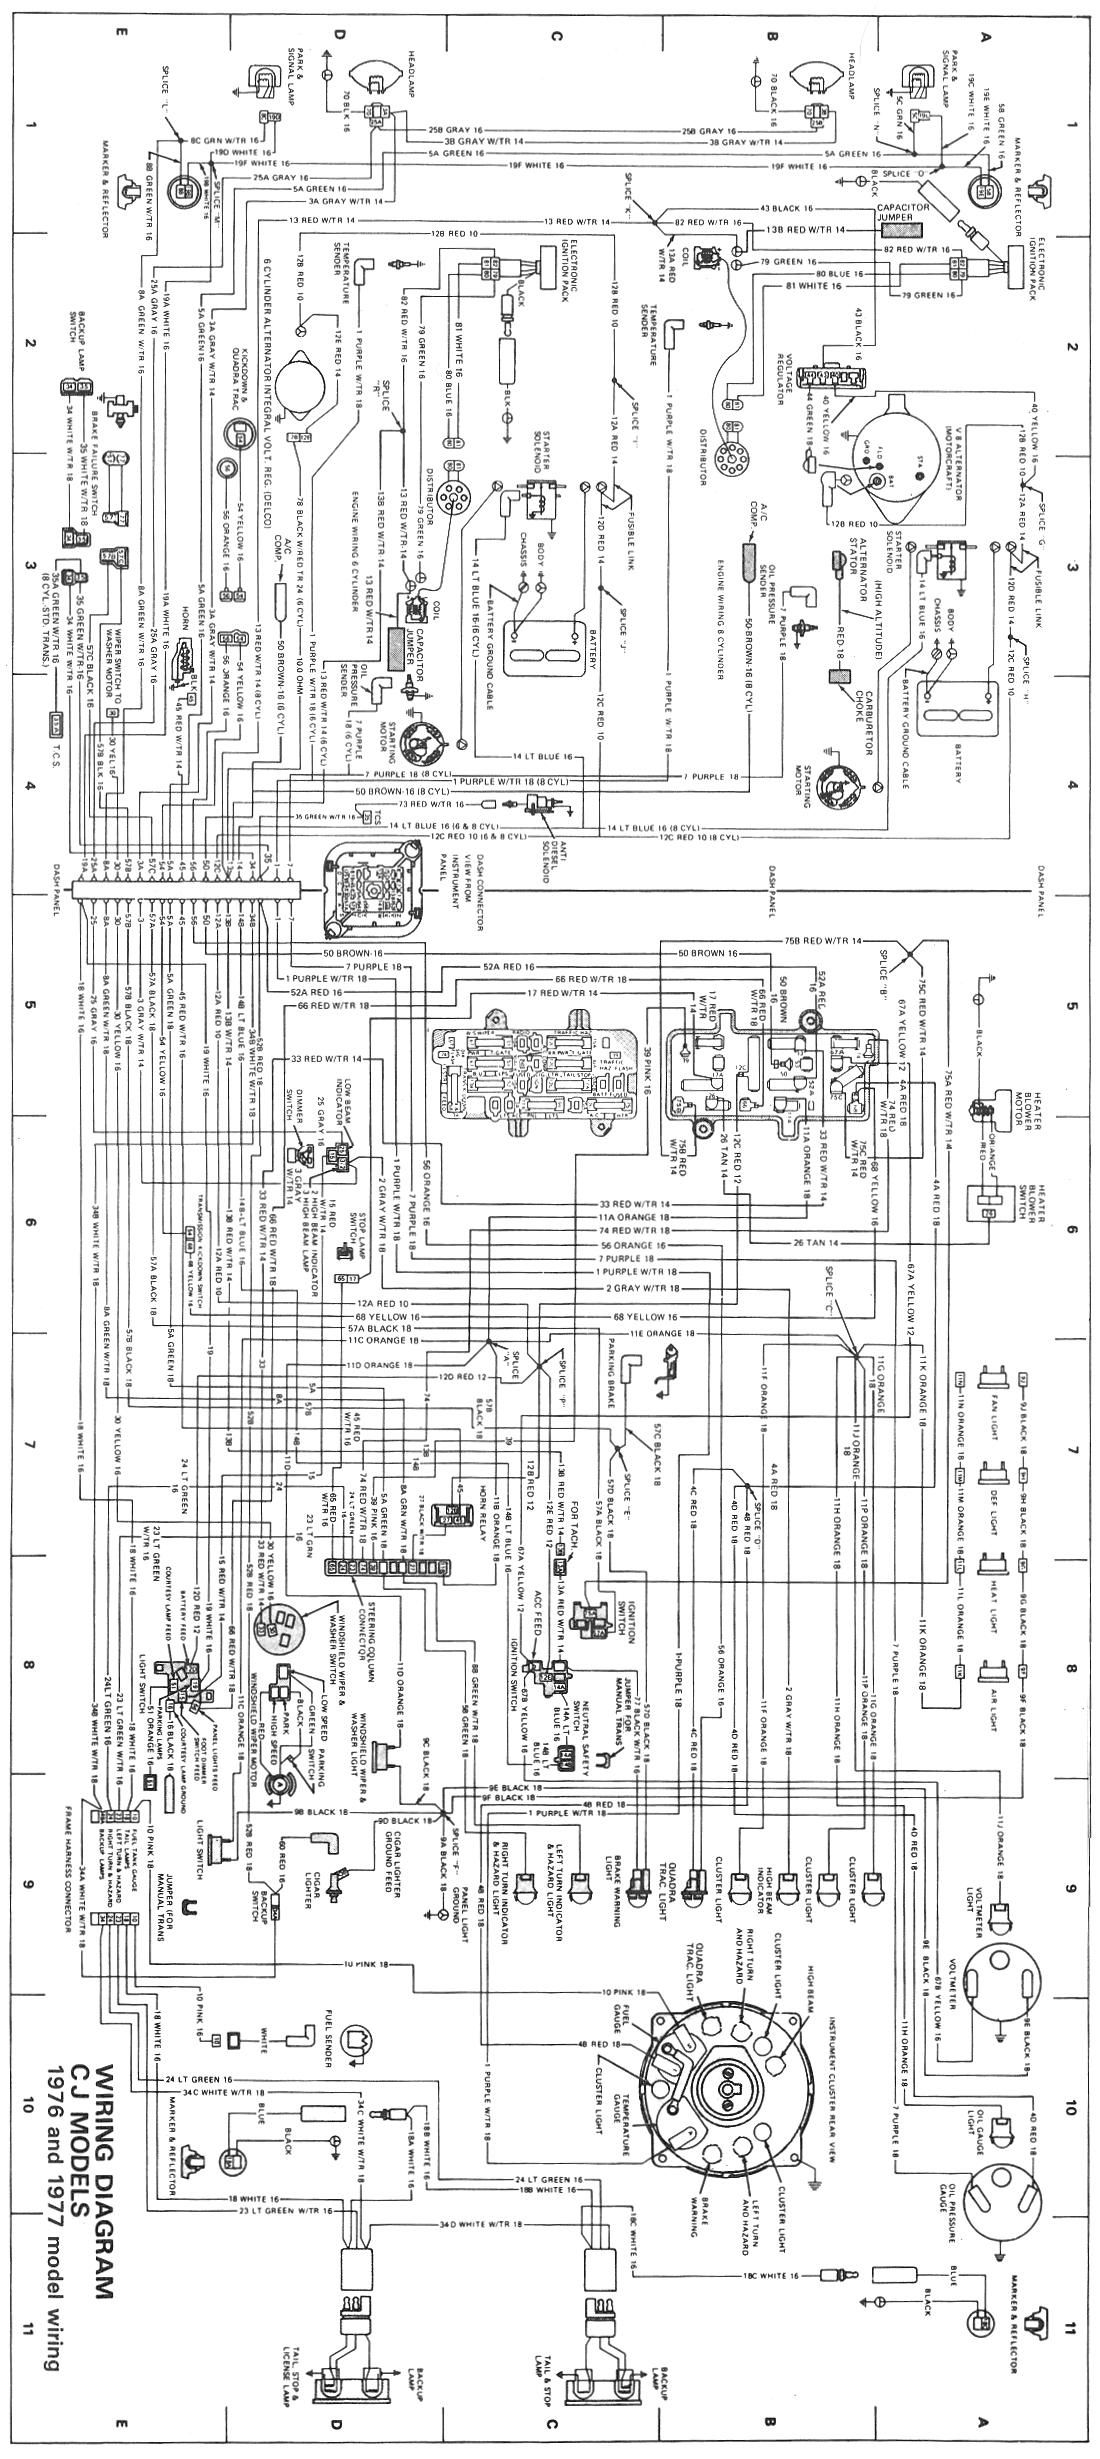 hight resolution of cj wiring diagram 1976 1977 jpg 1 100 2 459 pixels